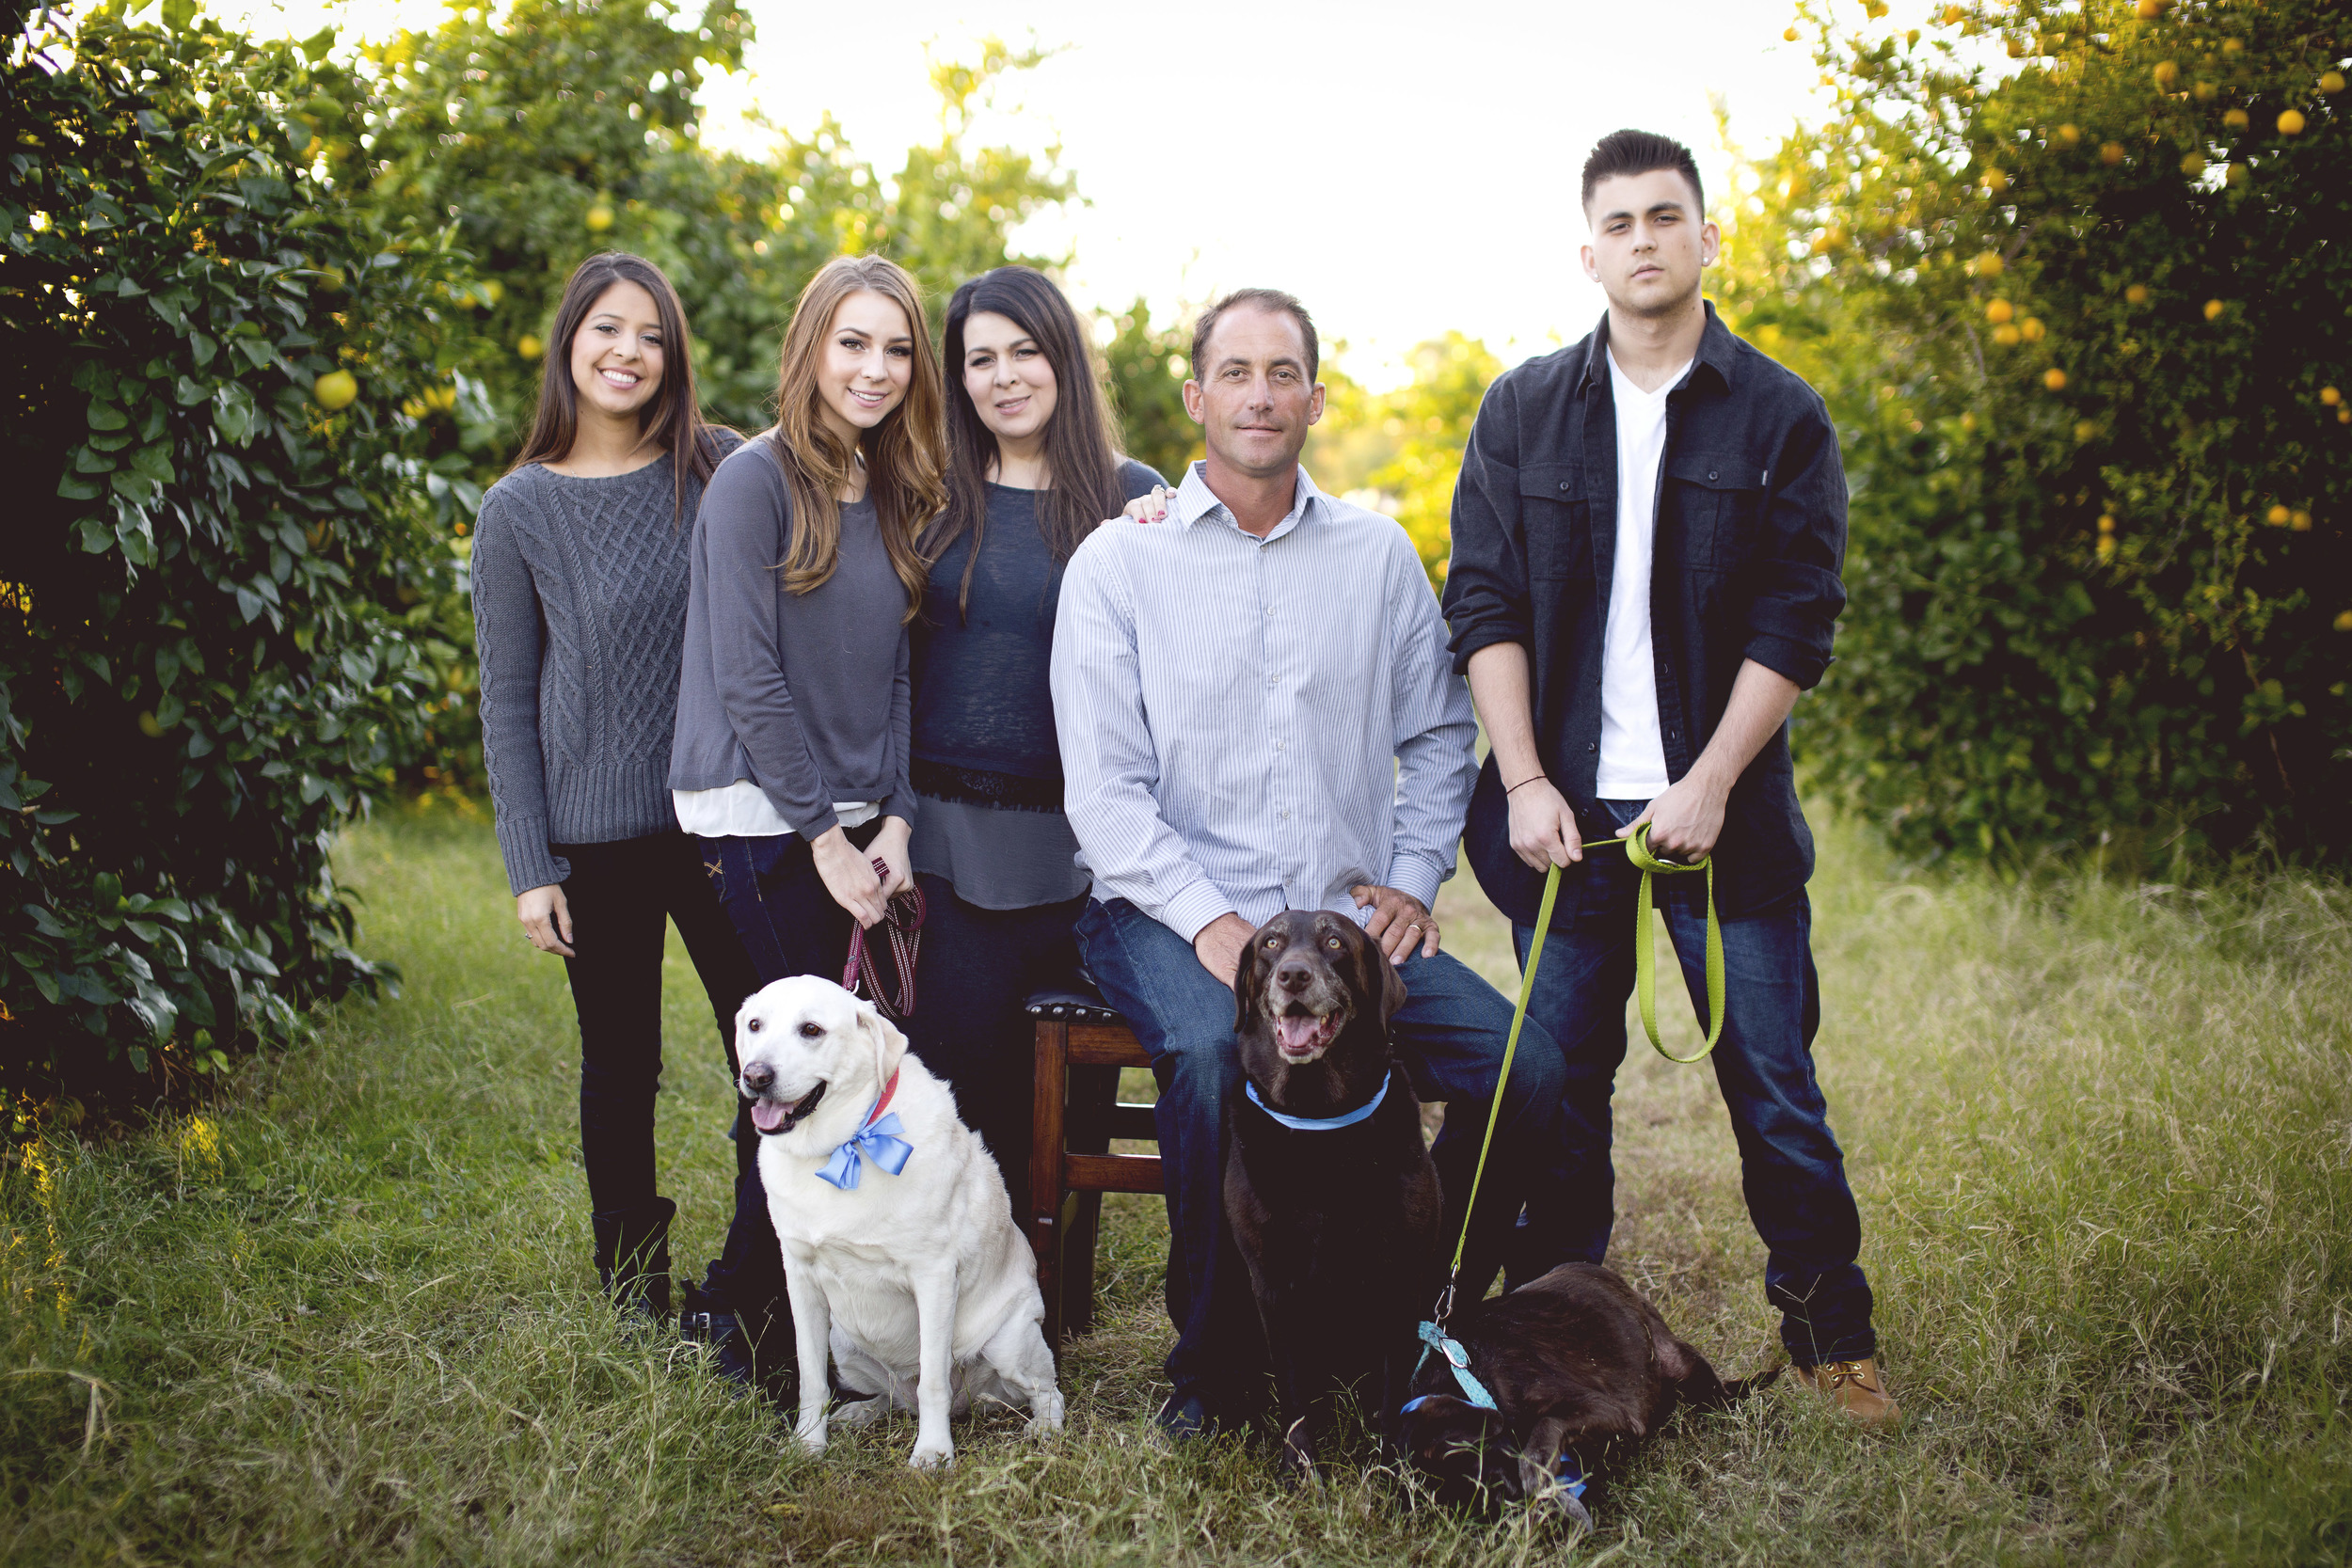 This is our family. We have two daughters, Lacey and Alexis, and a son, Colten. We adore our labs, Darli, Molly Sugar (not shown  here) and Prunella.